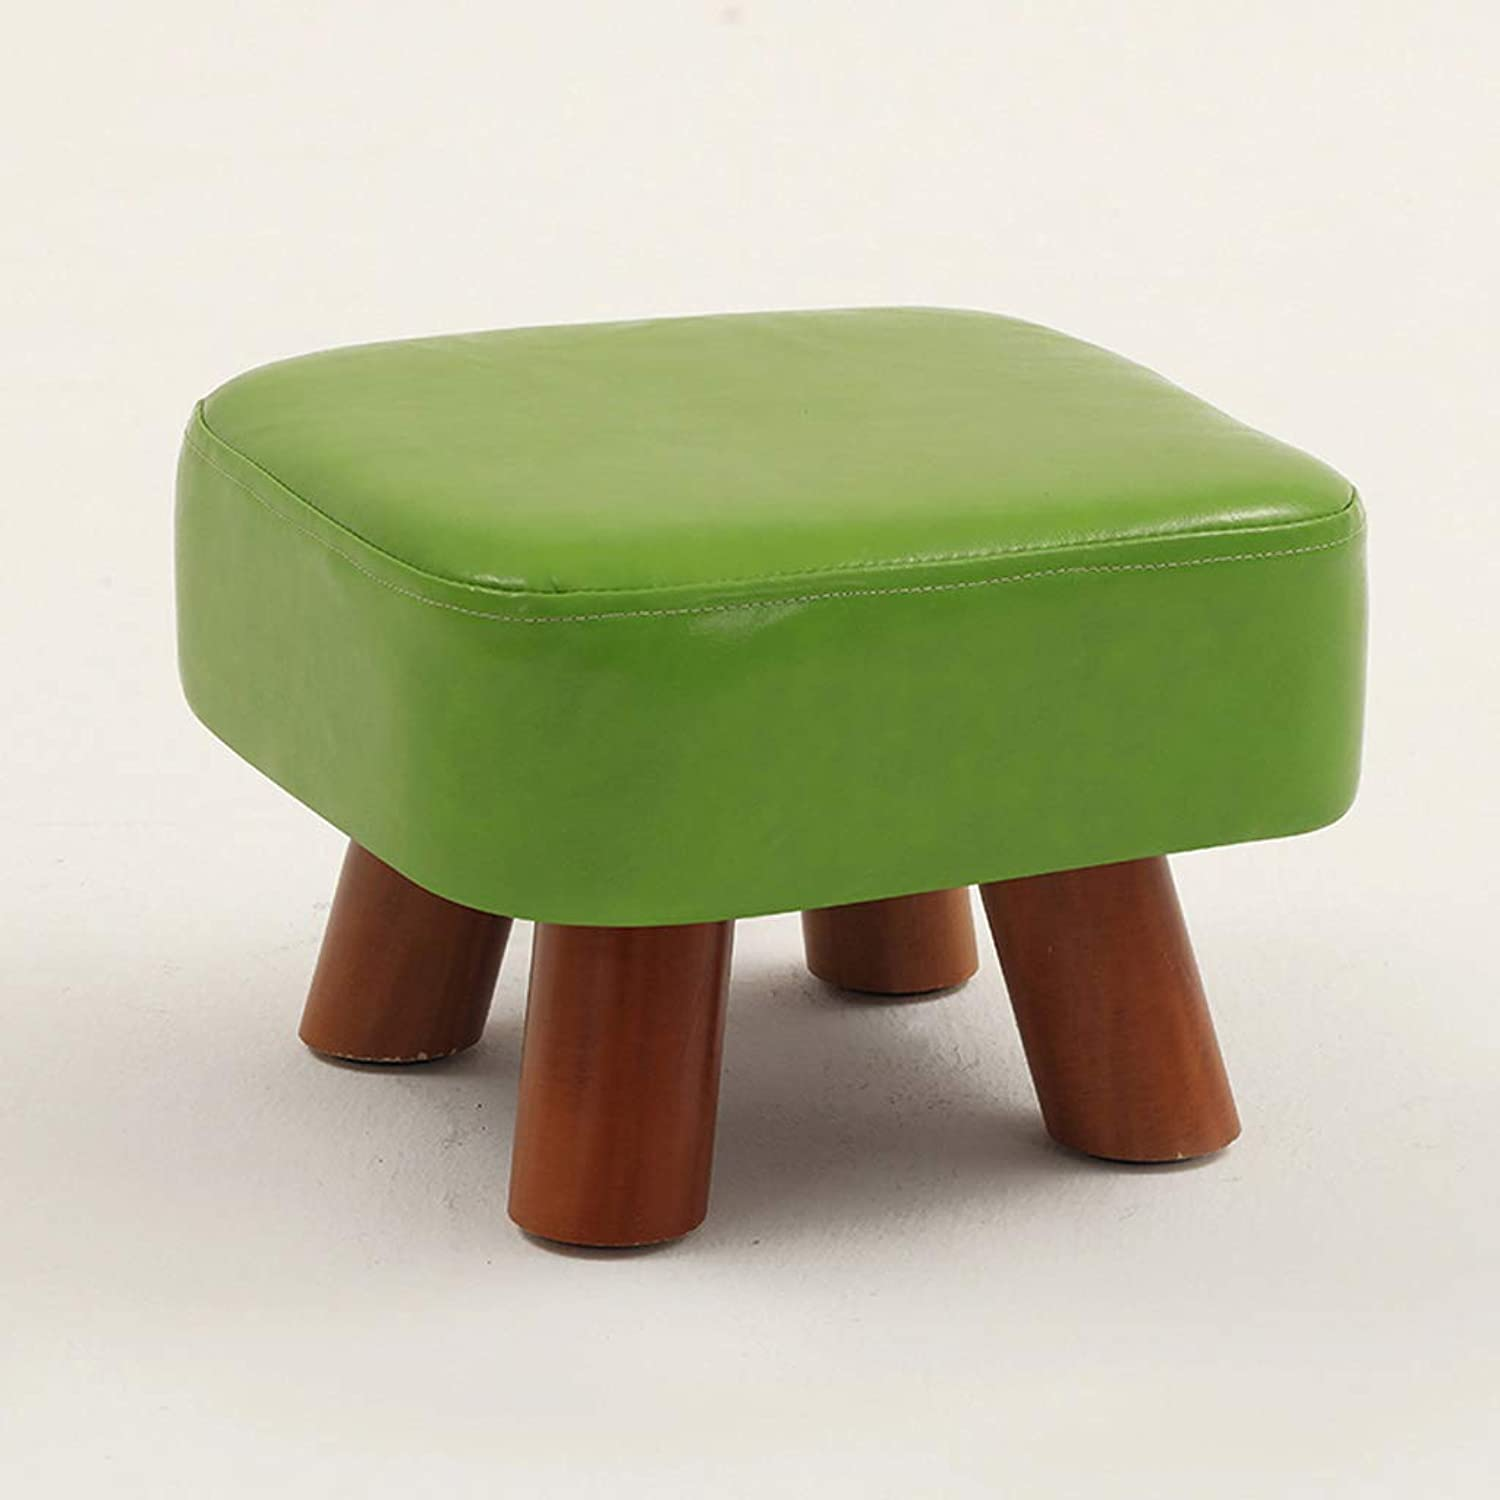 HLJ Solid Wood Home Small Bench Fashion Creative Living Room Sofa Stool Simple Change shoes Stool